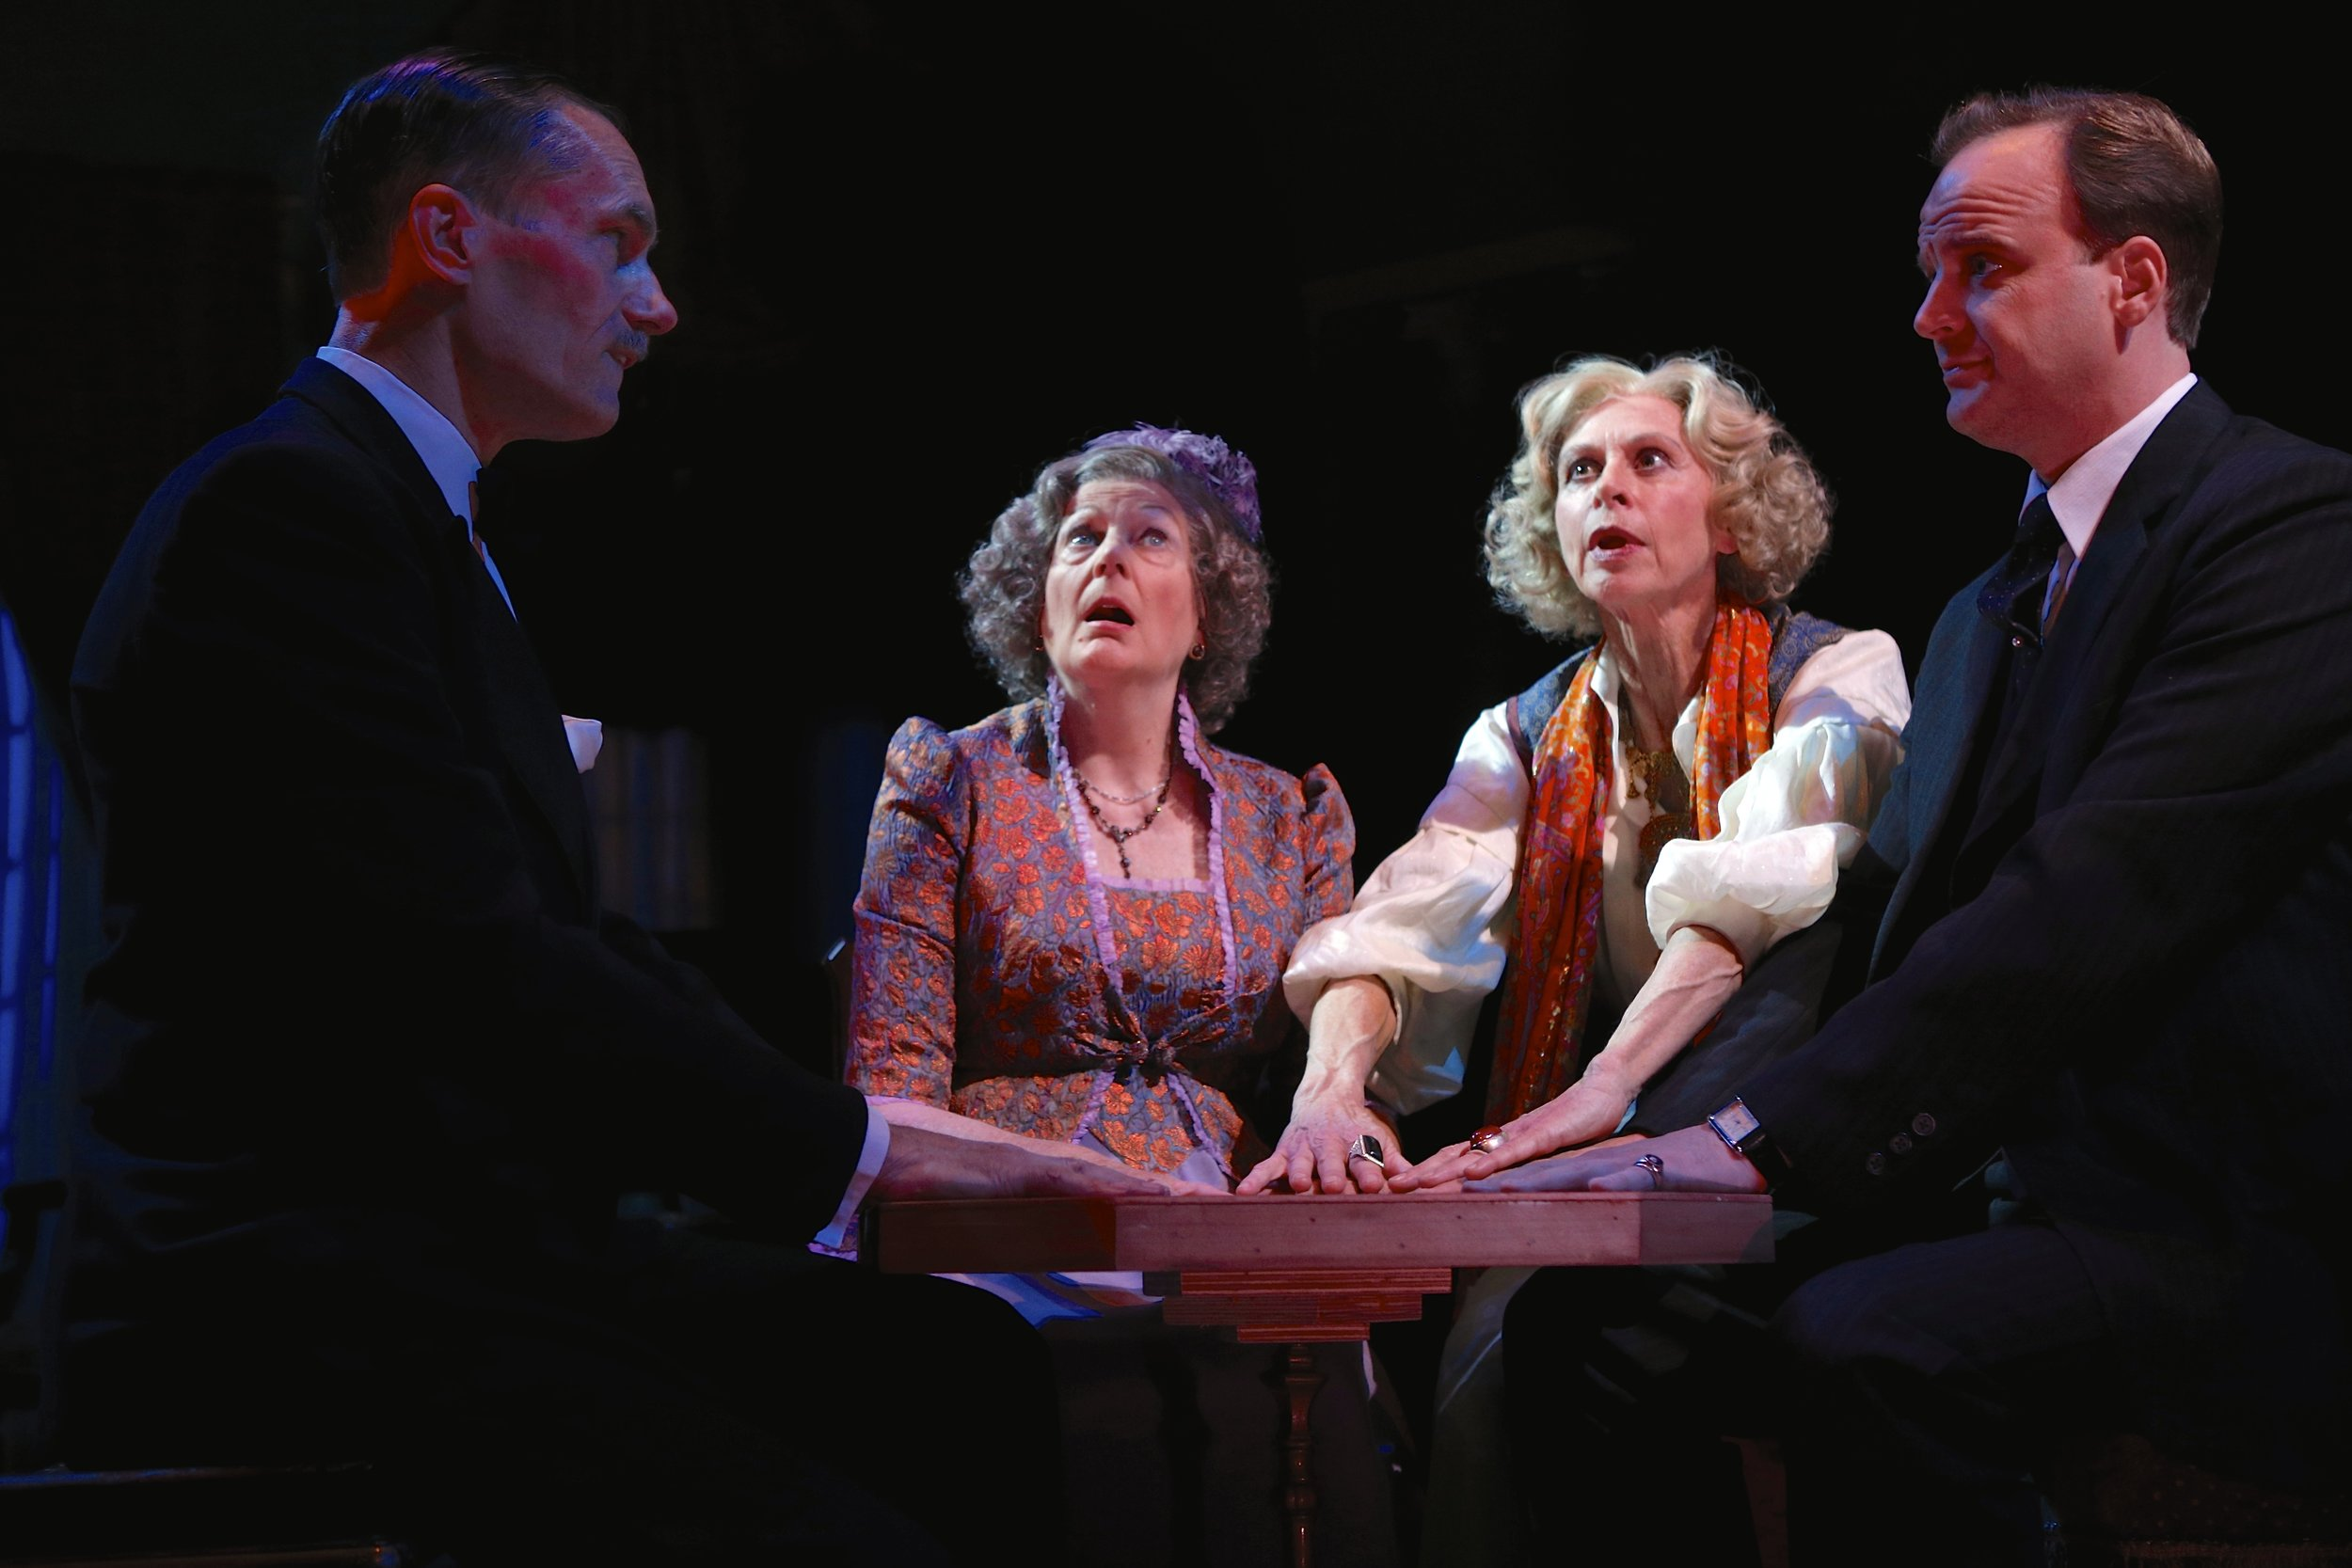 Curzon Dobell (as Dr. Bradman), Elizabeth Ingram (as Mrs. Bradman), Patricia Hodges (as Madame Arcati), and Jeremiah Wiggins (as Charles Condomine) in the Syracuse Stage production of Noel Coward's Blithe Spirit. Photo by: Michael Davis